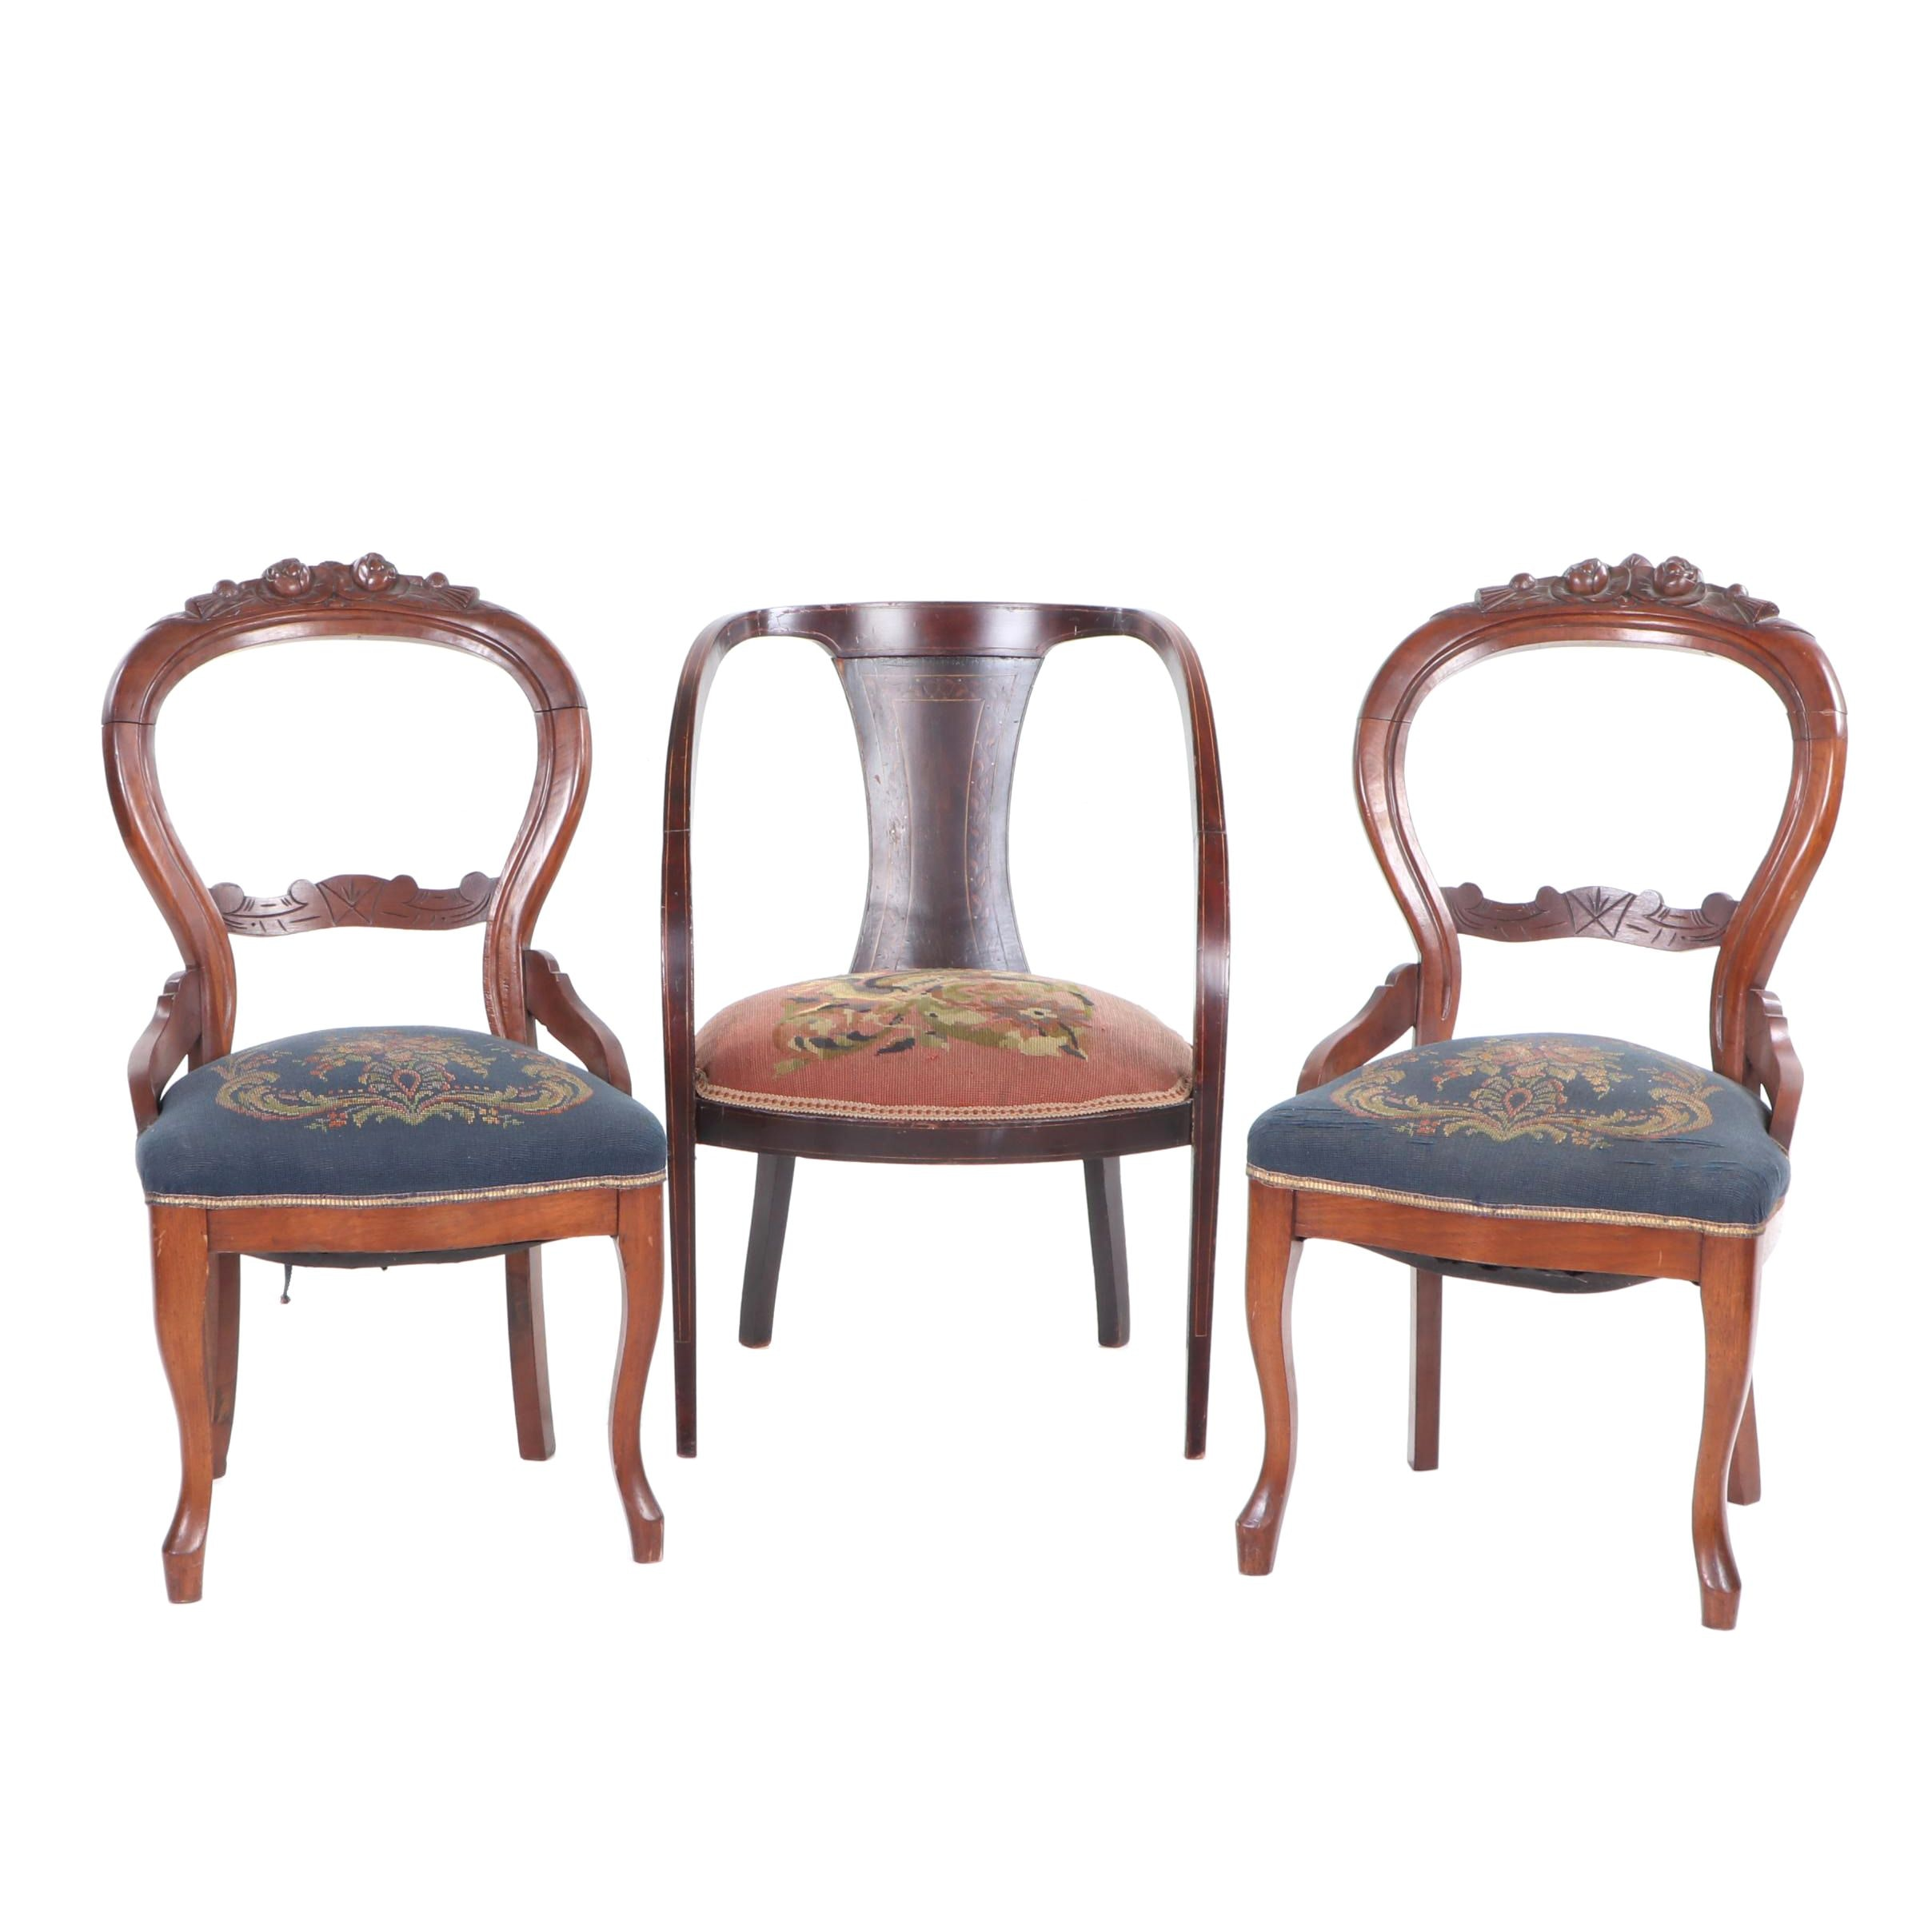 Victorian Period Mahogany Needlepoint Side Chairs, Late 19th Century